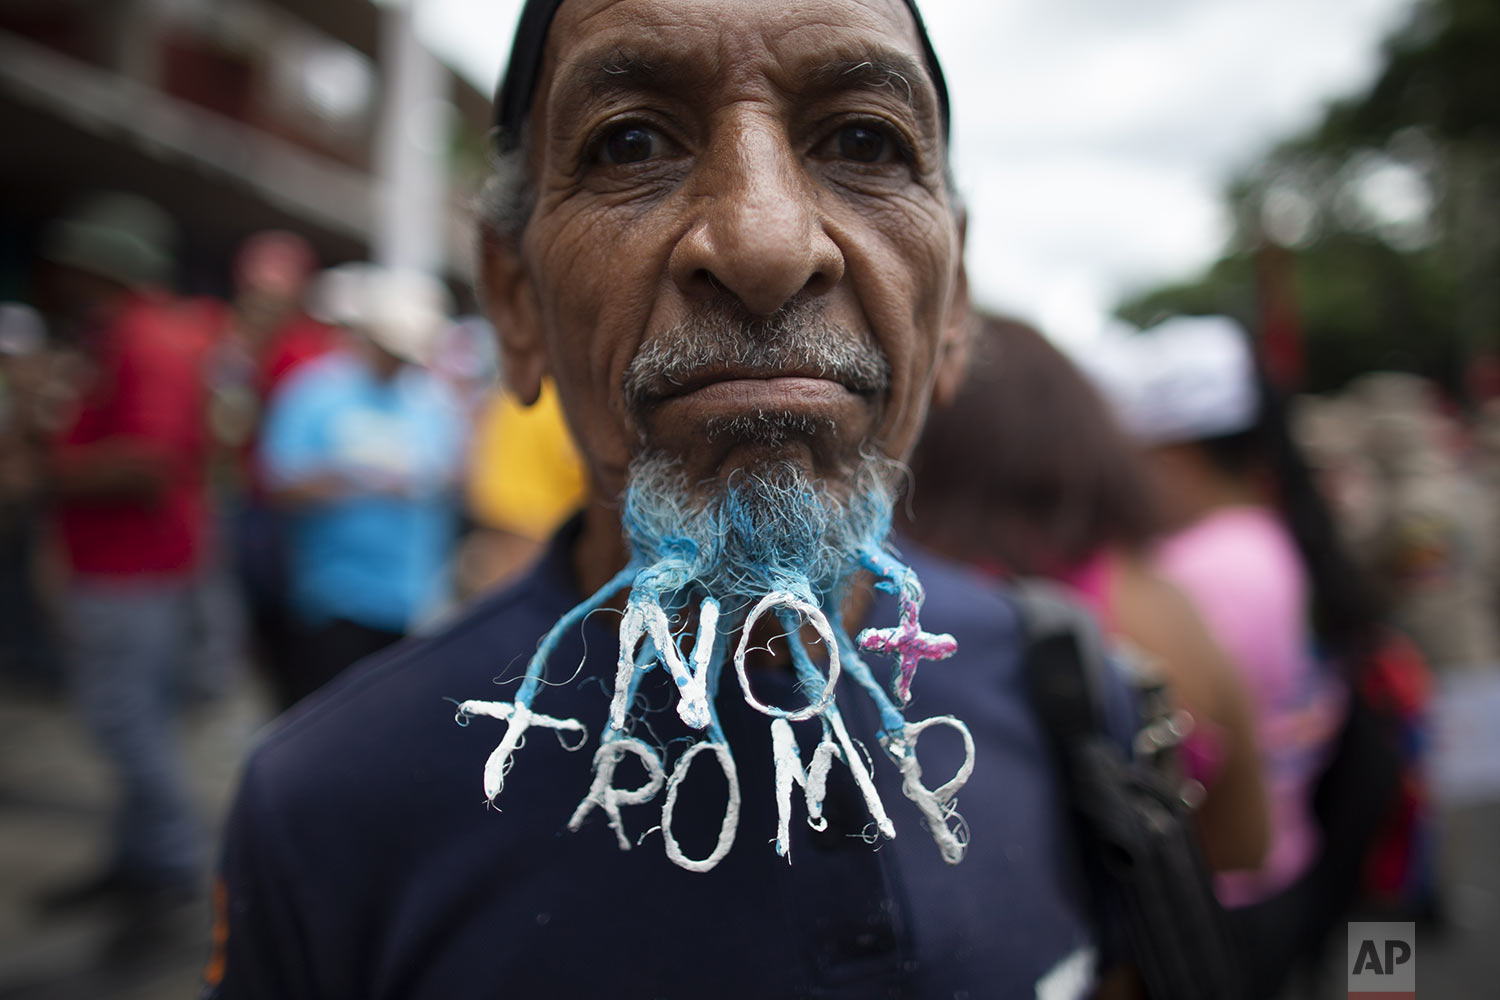 """A supporter of President Nicolas Maduro has his beard done with the words """"No more Trump"""" during an anti-imperialist rally in Caracas, Venezuela, Saturday, August 31, 2019. (AP Photo/Ariana Cubillos)"""